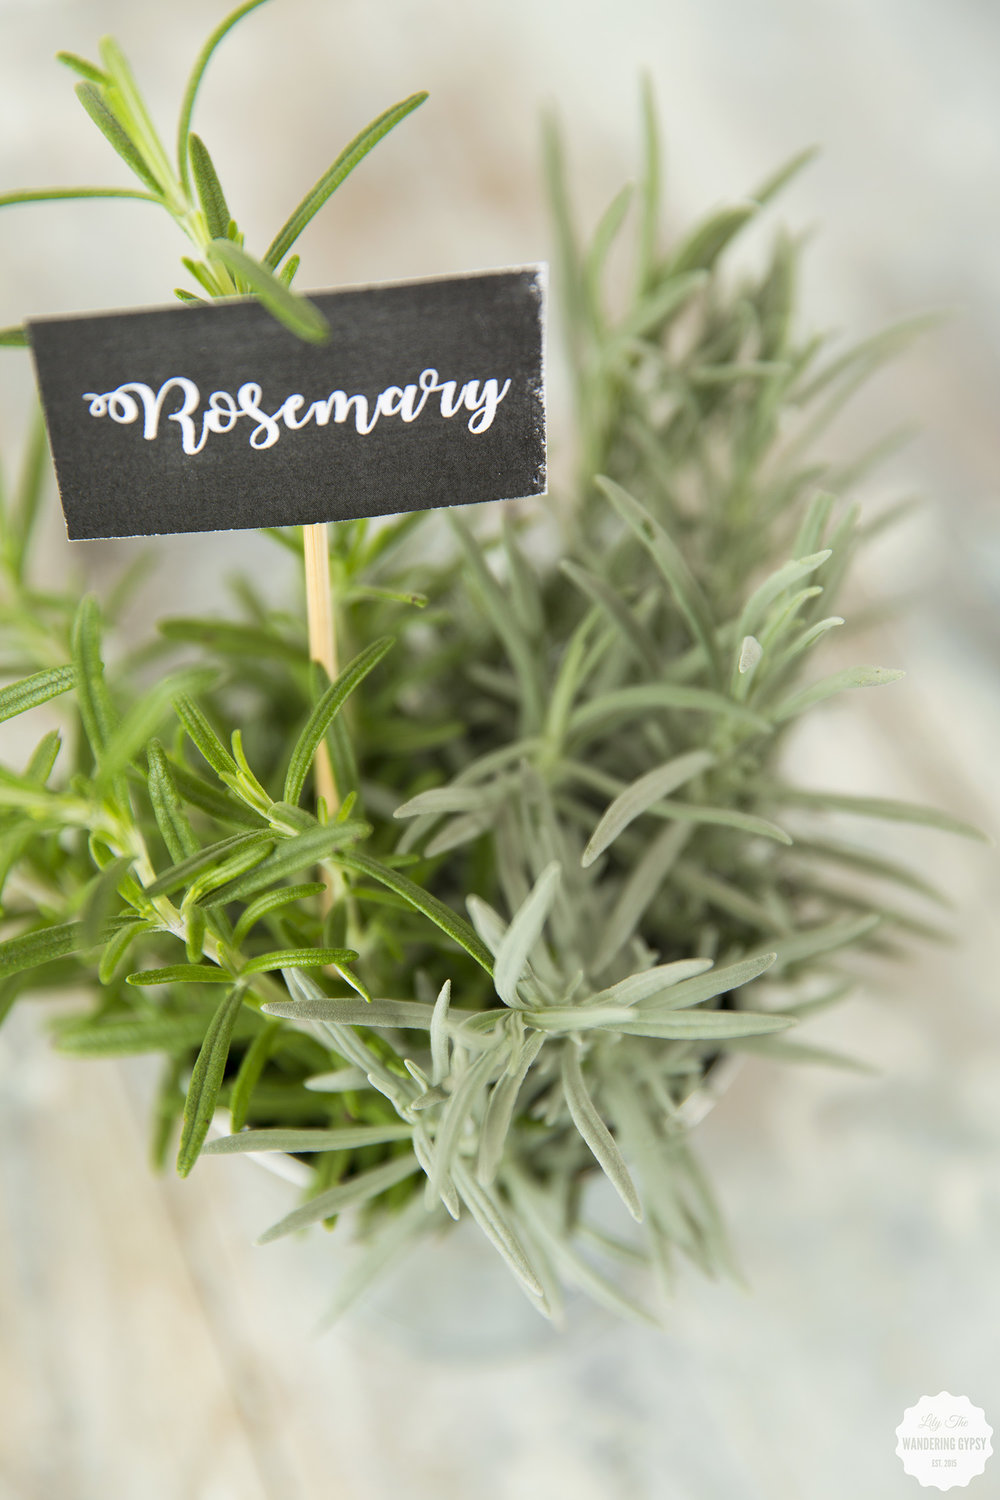 #WhatInconvenience - Cute DIY Herb Markers